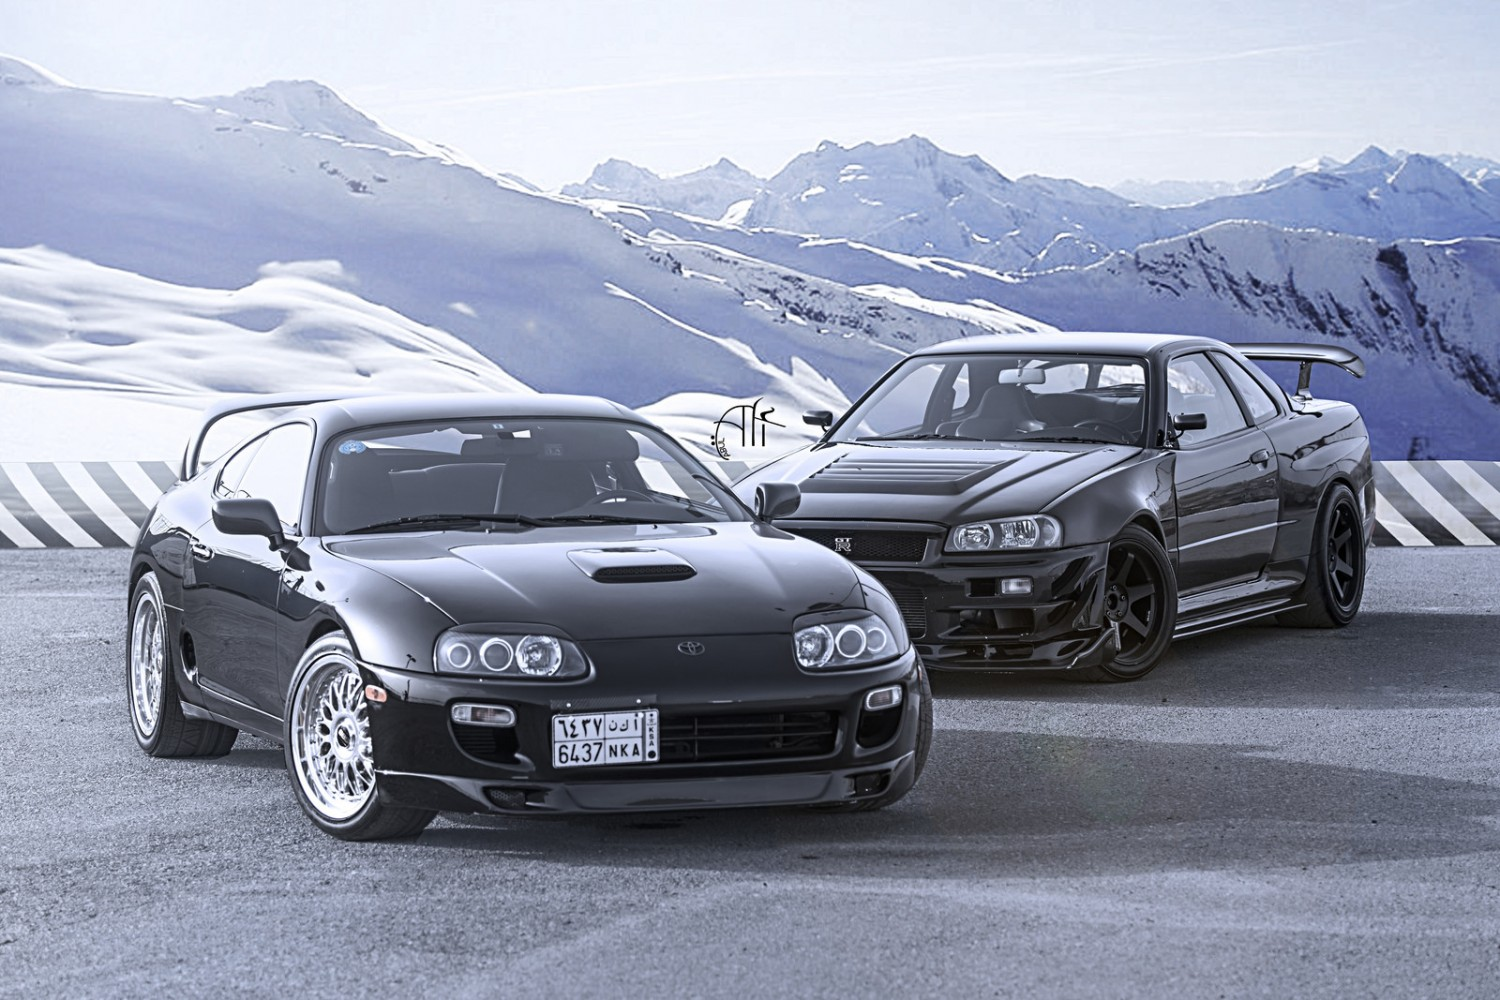 r34 gtr or supra stancenation� form gt function